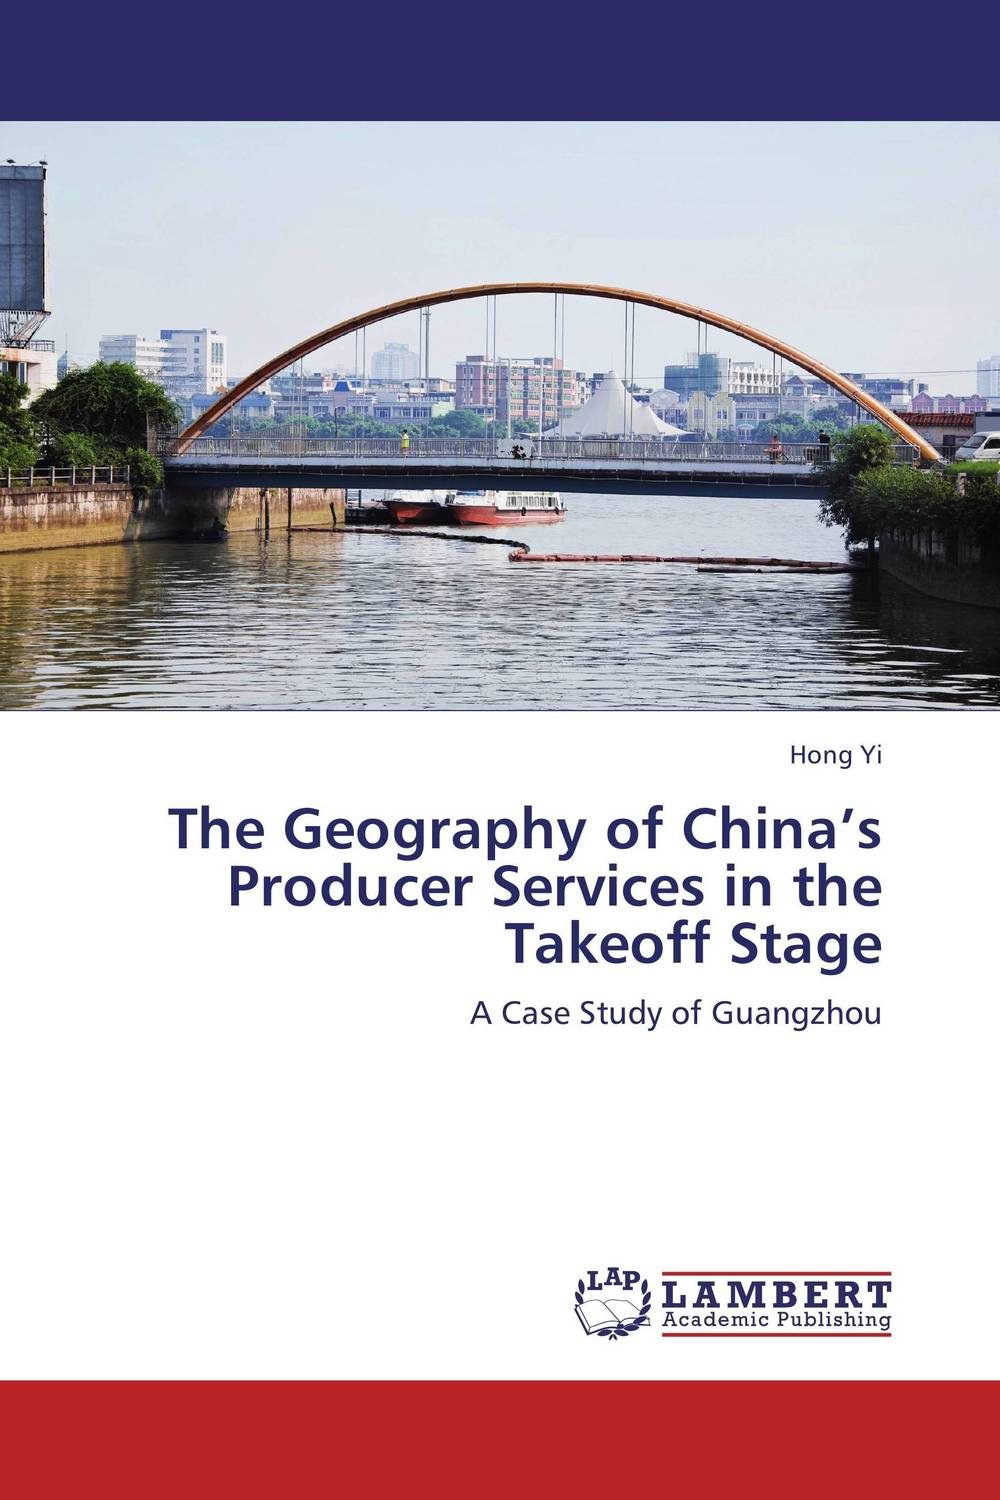 The Geography of China's Producer Services in the Takeoff Stage trichoderma sp a potent producer of xylanase enzyme